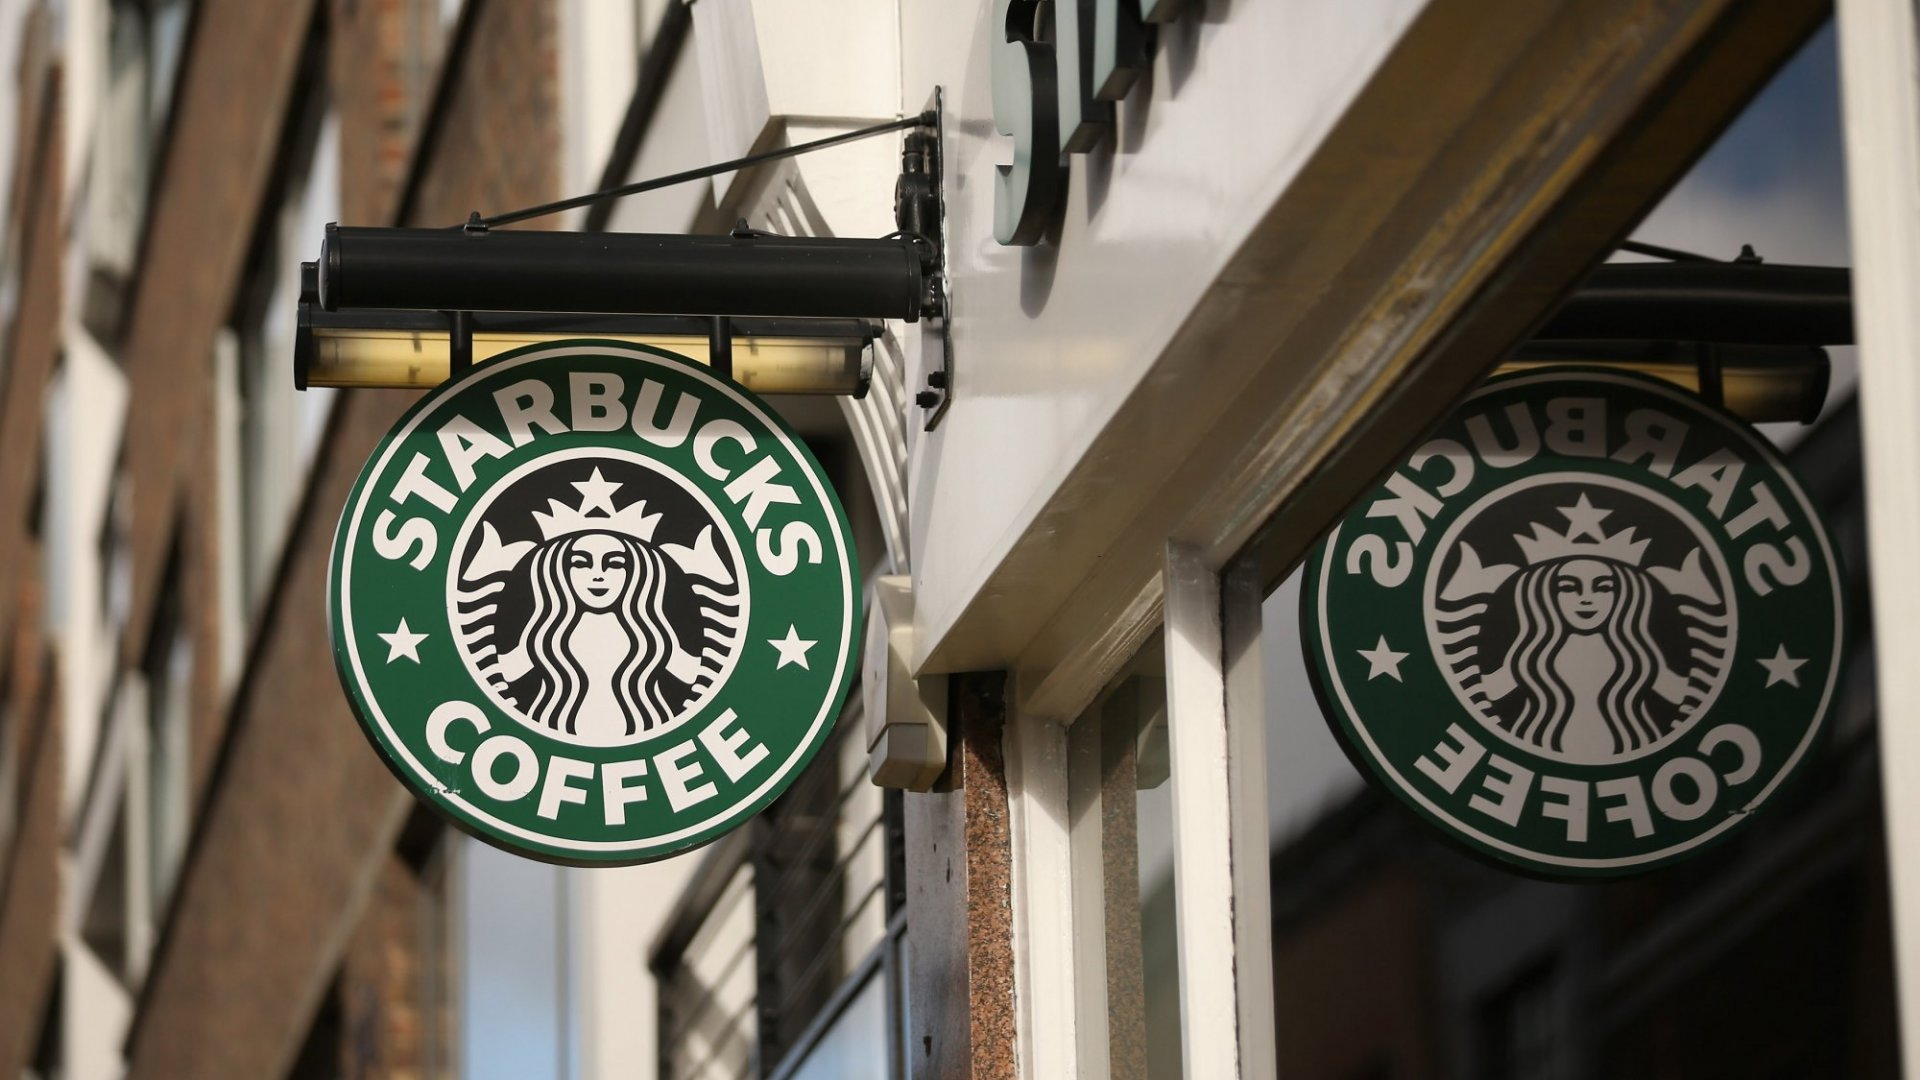 Why Starbucks Wins the Media By 'Hating Jesus' and Loving Veterans